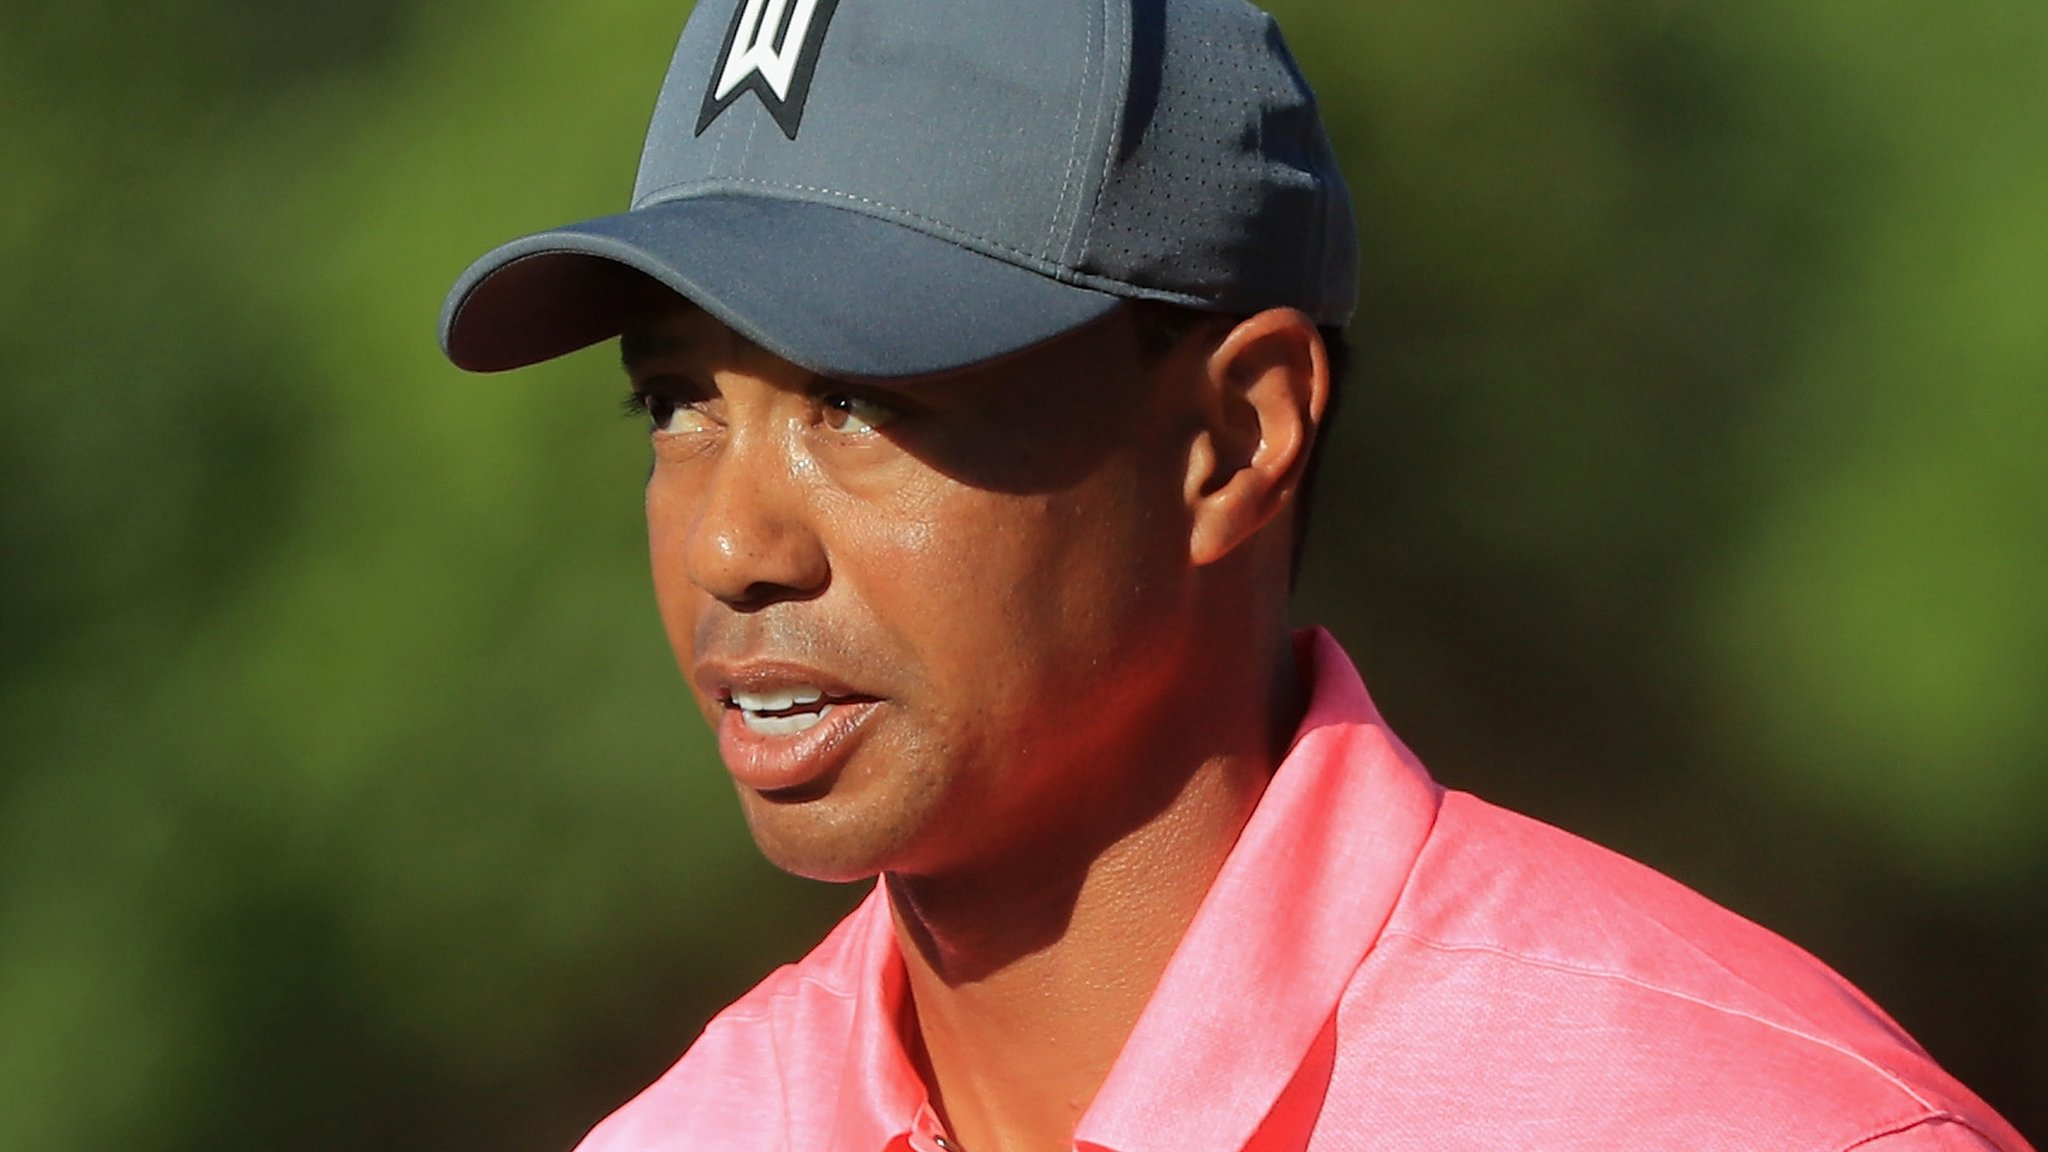 Stenson and DeChambeau lead at Bay Hill as Woods falters